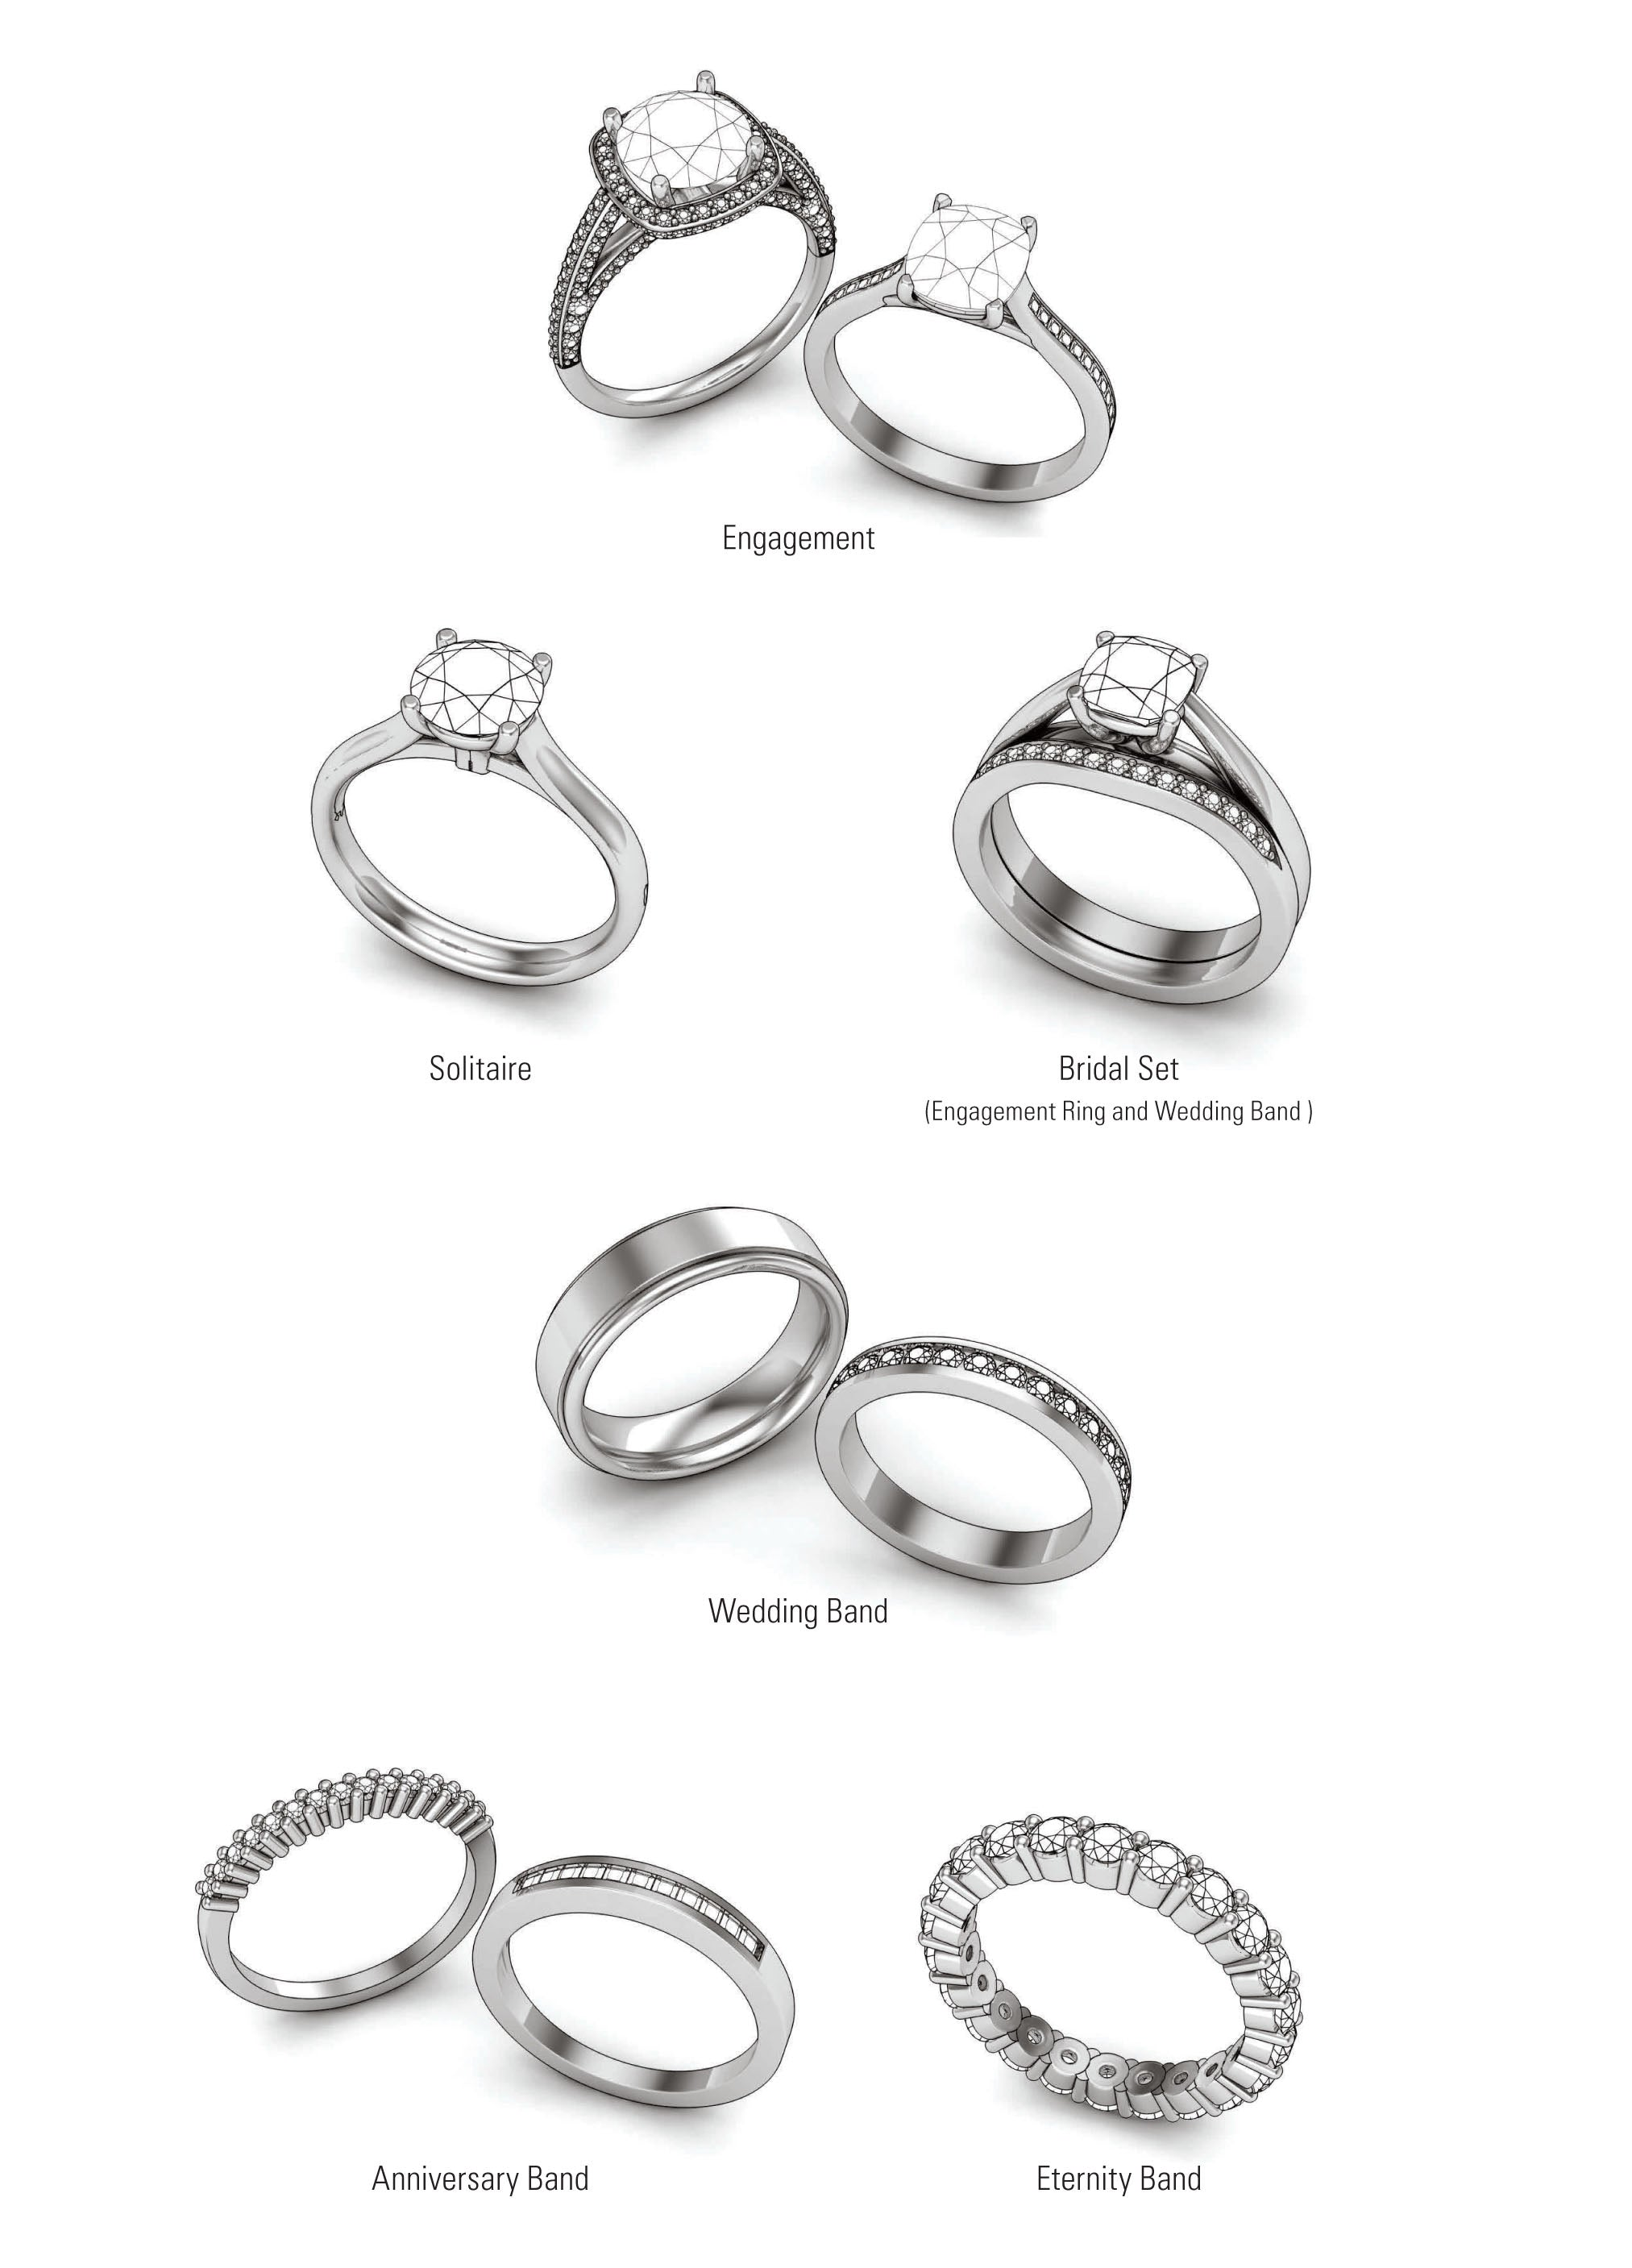 Types of rings include engagement rings, solitaire rings, bridal sets, wedding bands, anniversary bands and eternity bands.